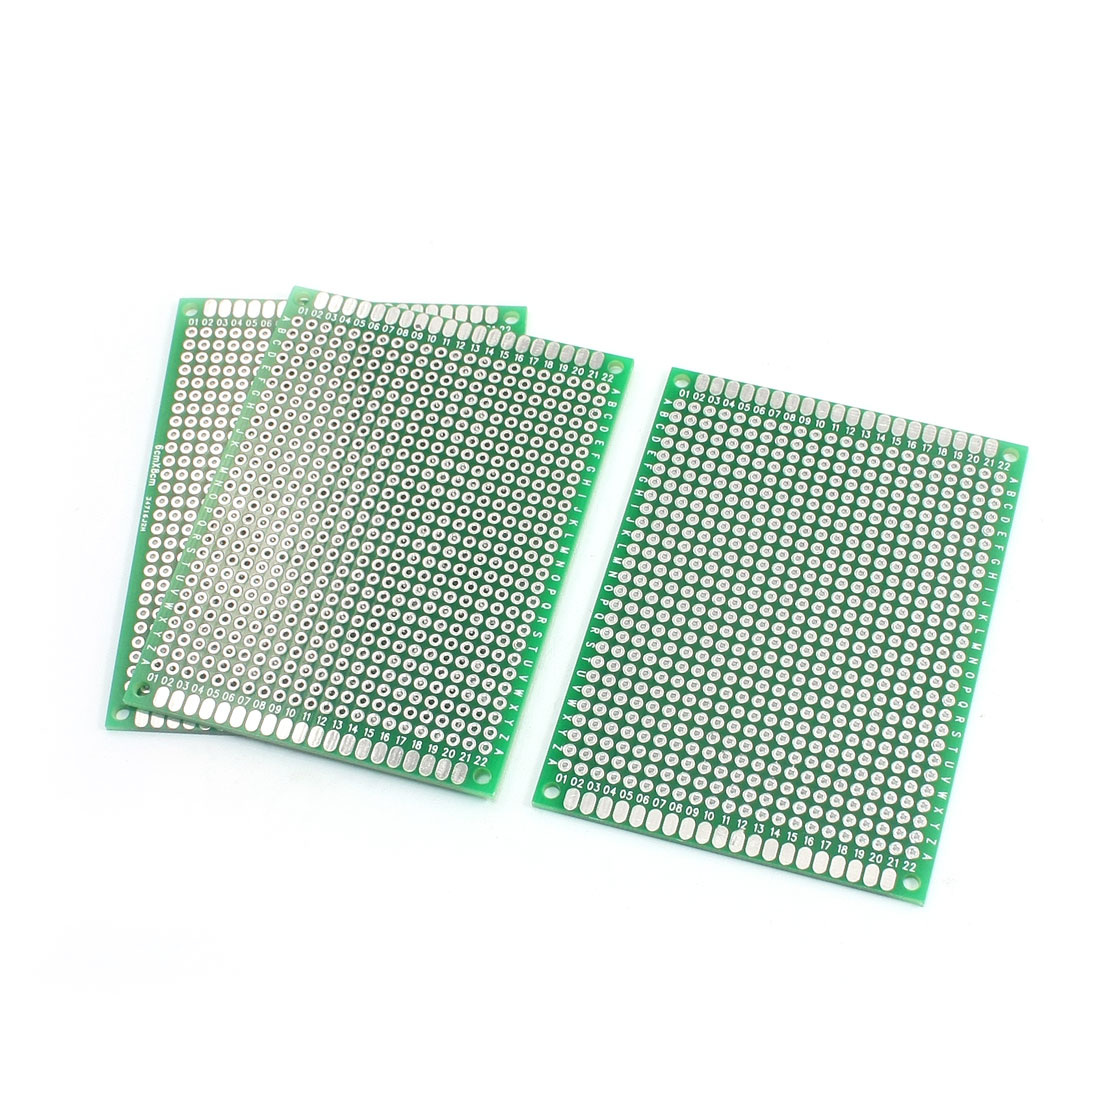 3Pcs Electronic DIY Double Sided PCB Printed Circuit Board 6cm x 8cm